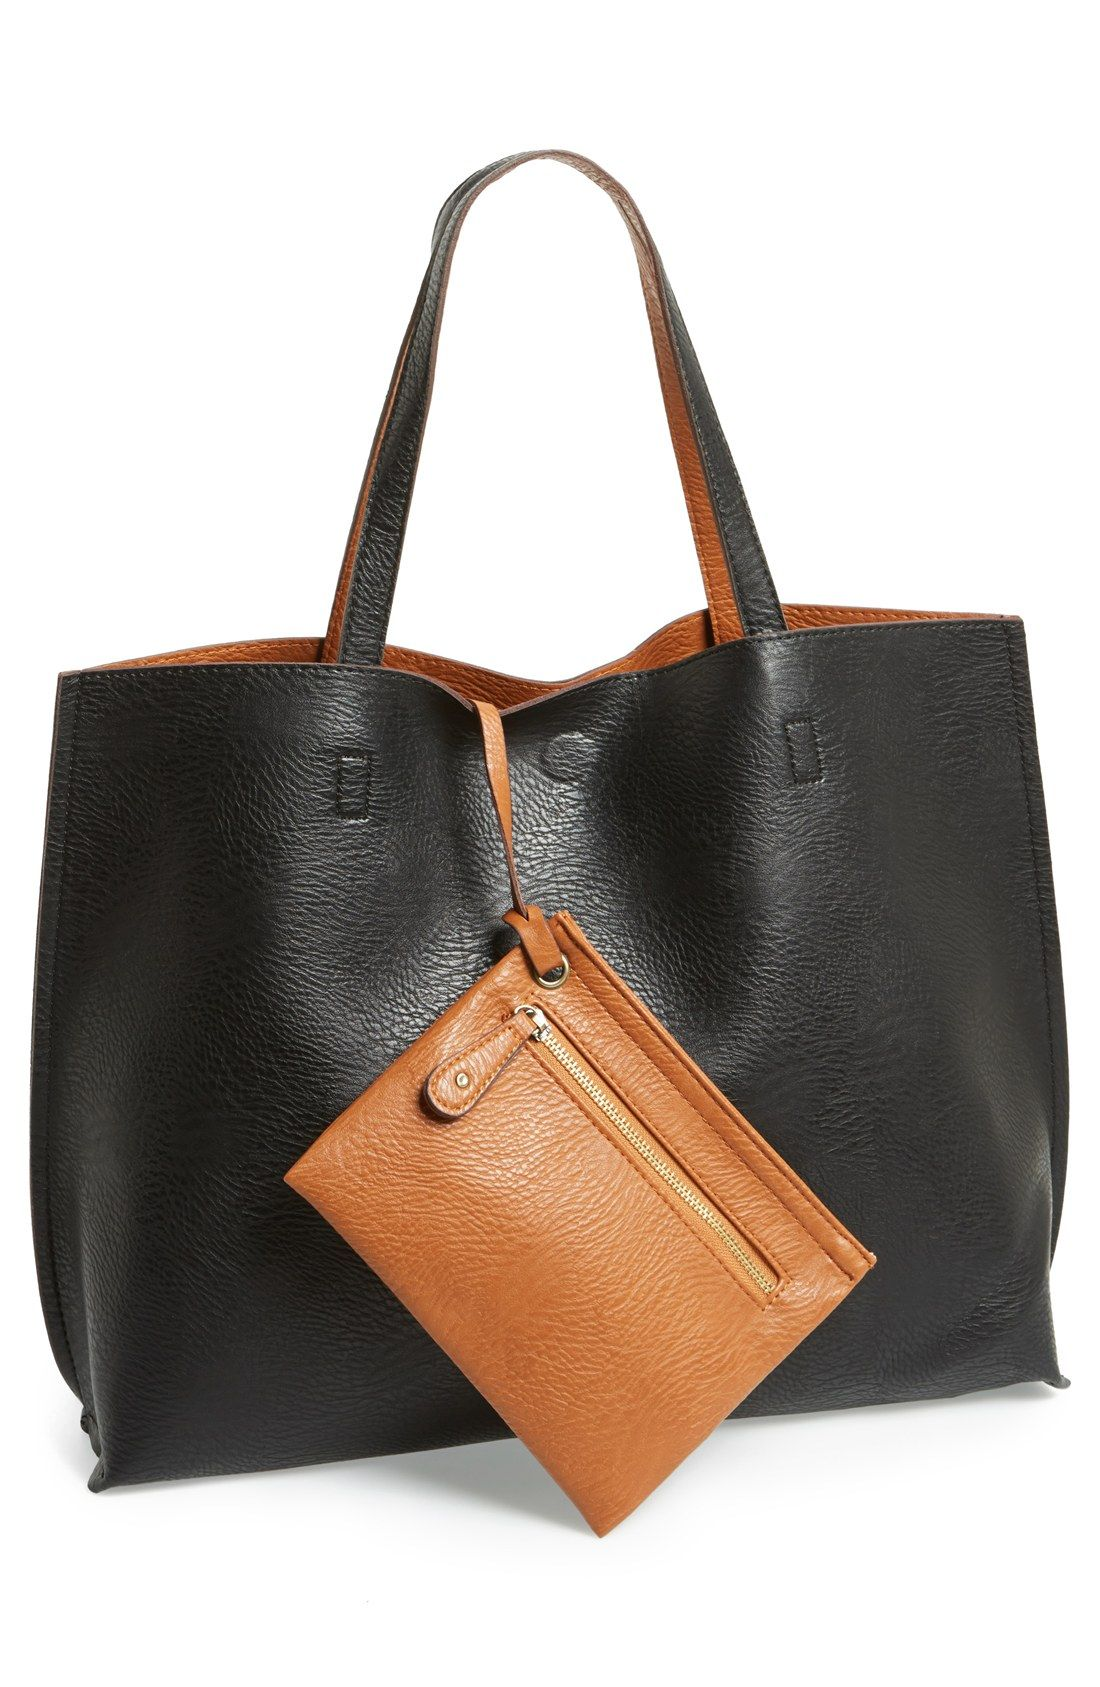 Reversible Faux Leather Tote & Wristlet | Leather totes, Wristlets ...